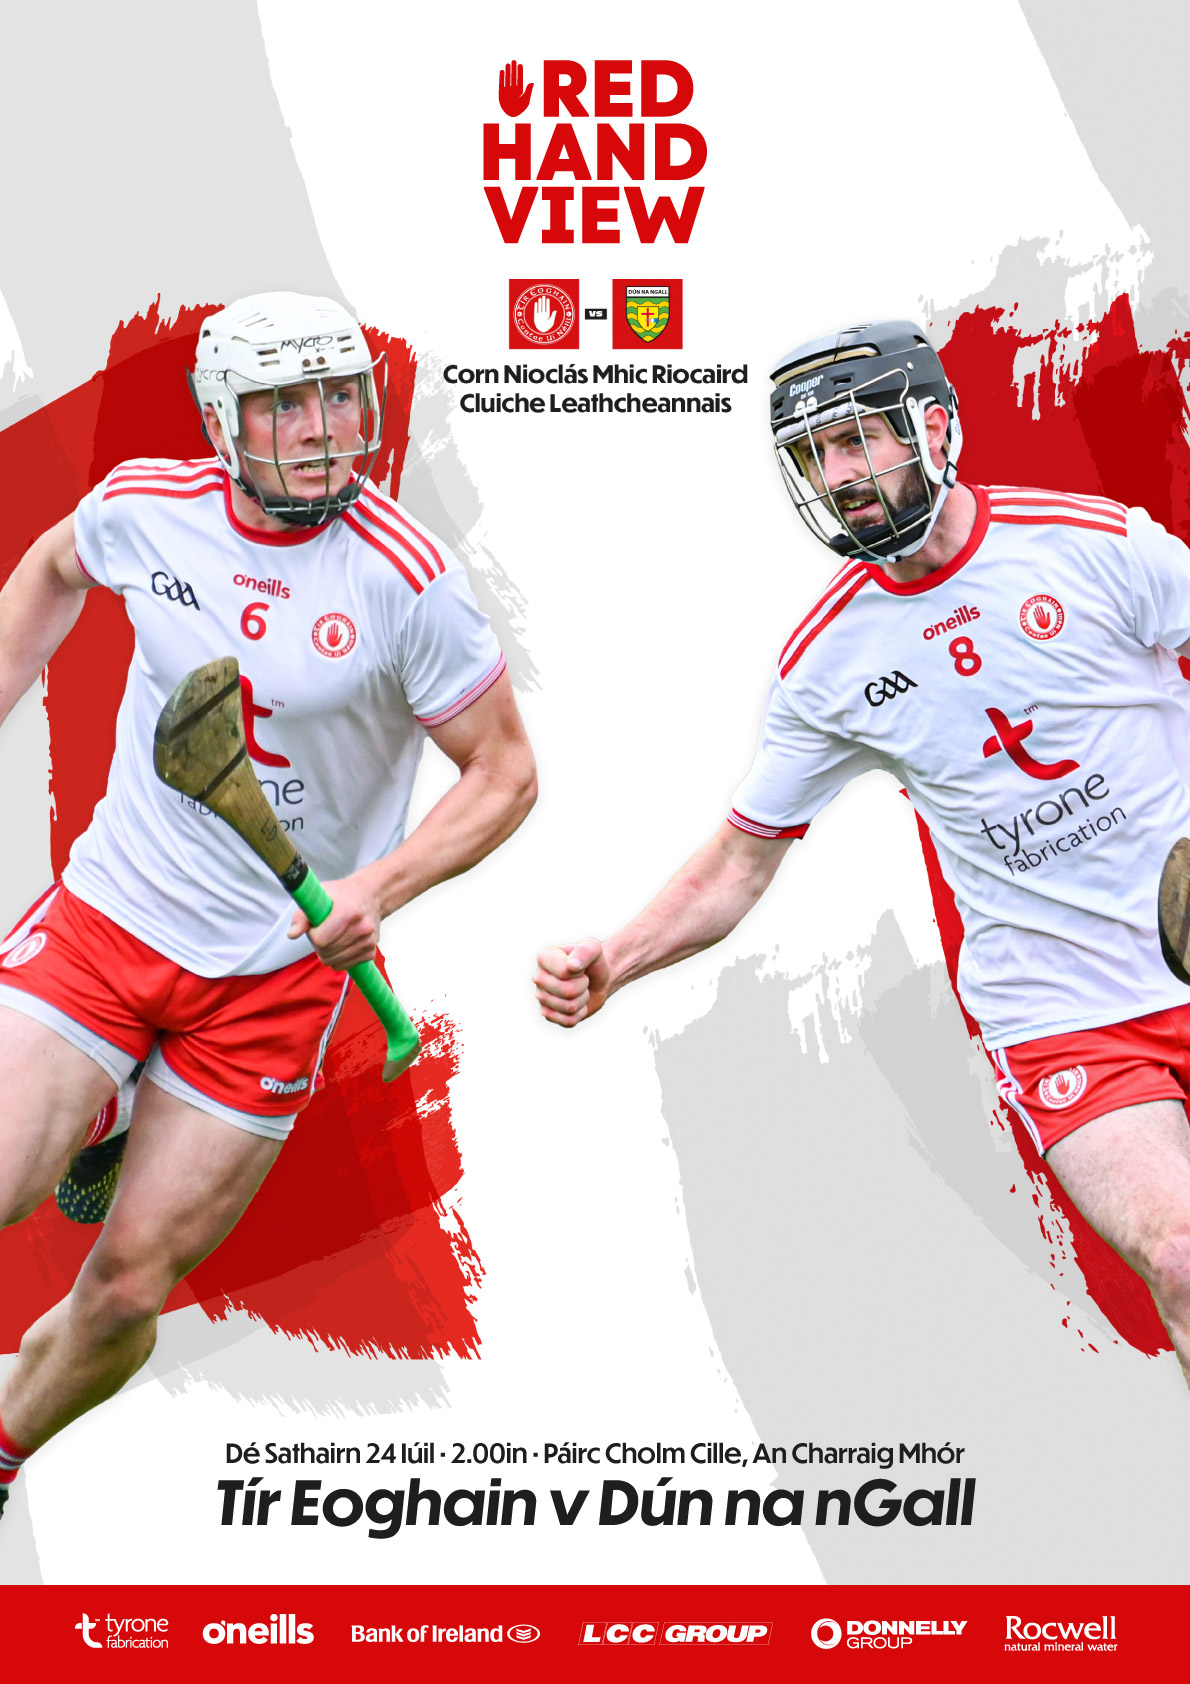 Nicky Rackard Cup Programme Available to Download